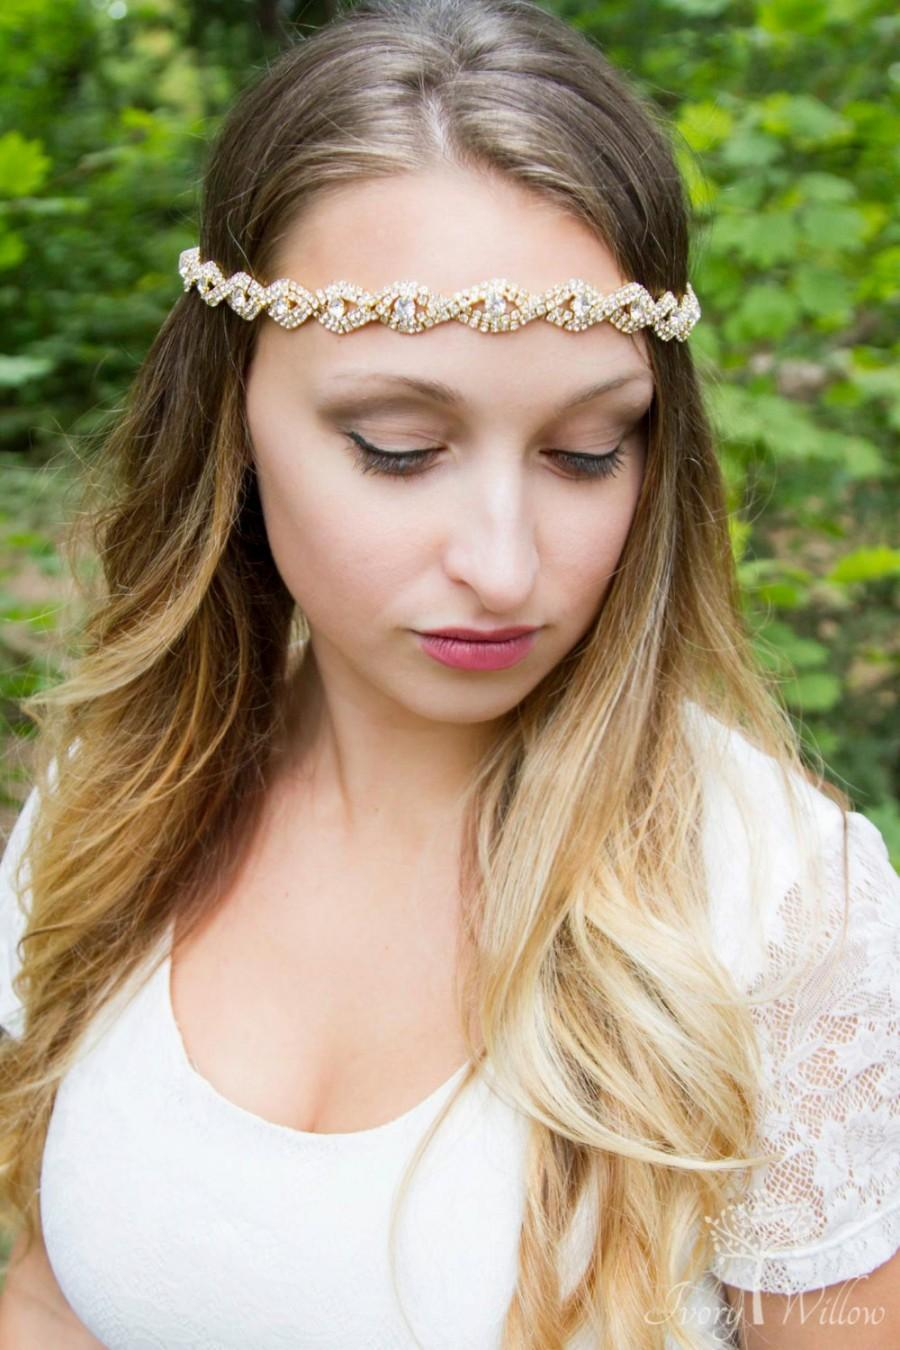 Hochzeit - Gold Headpiece for Wedding - Bridal - Gold Headpiece - Crystal Rhinestone - Ribbon Tie back